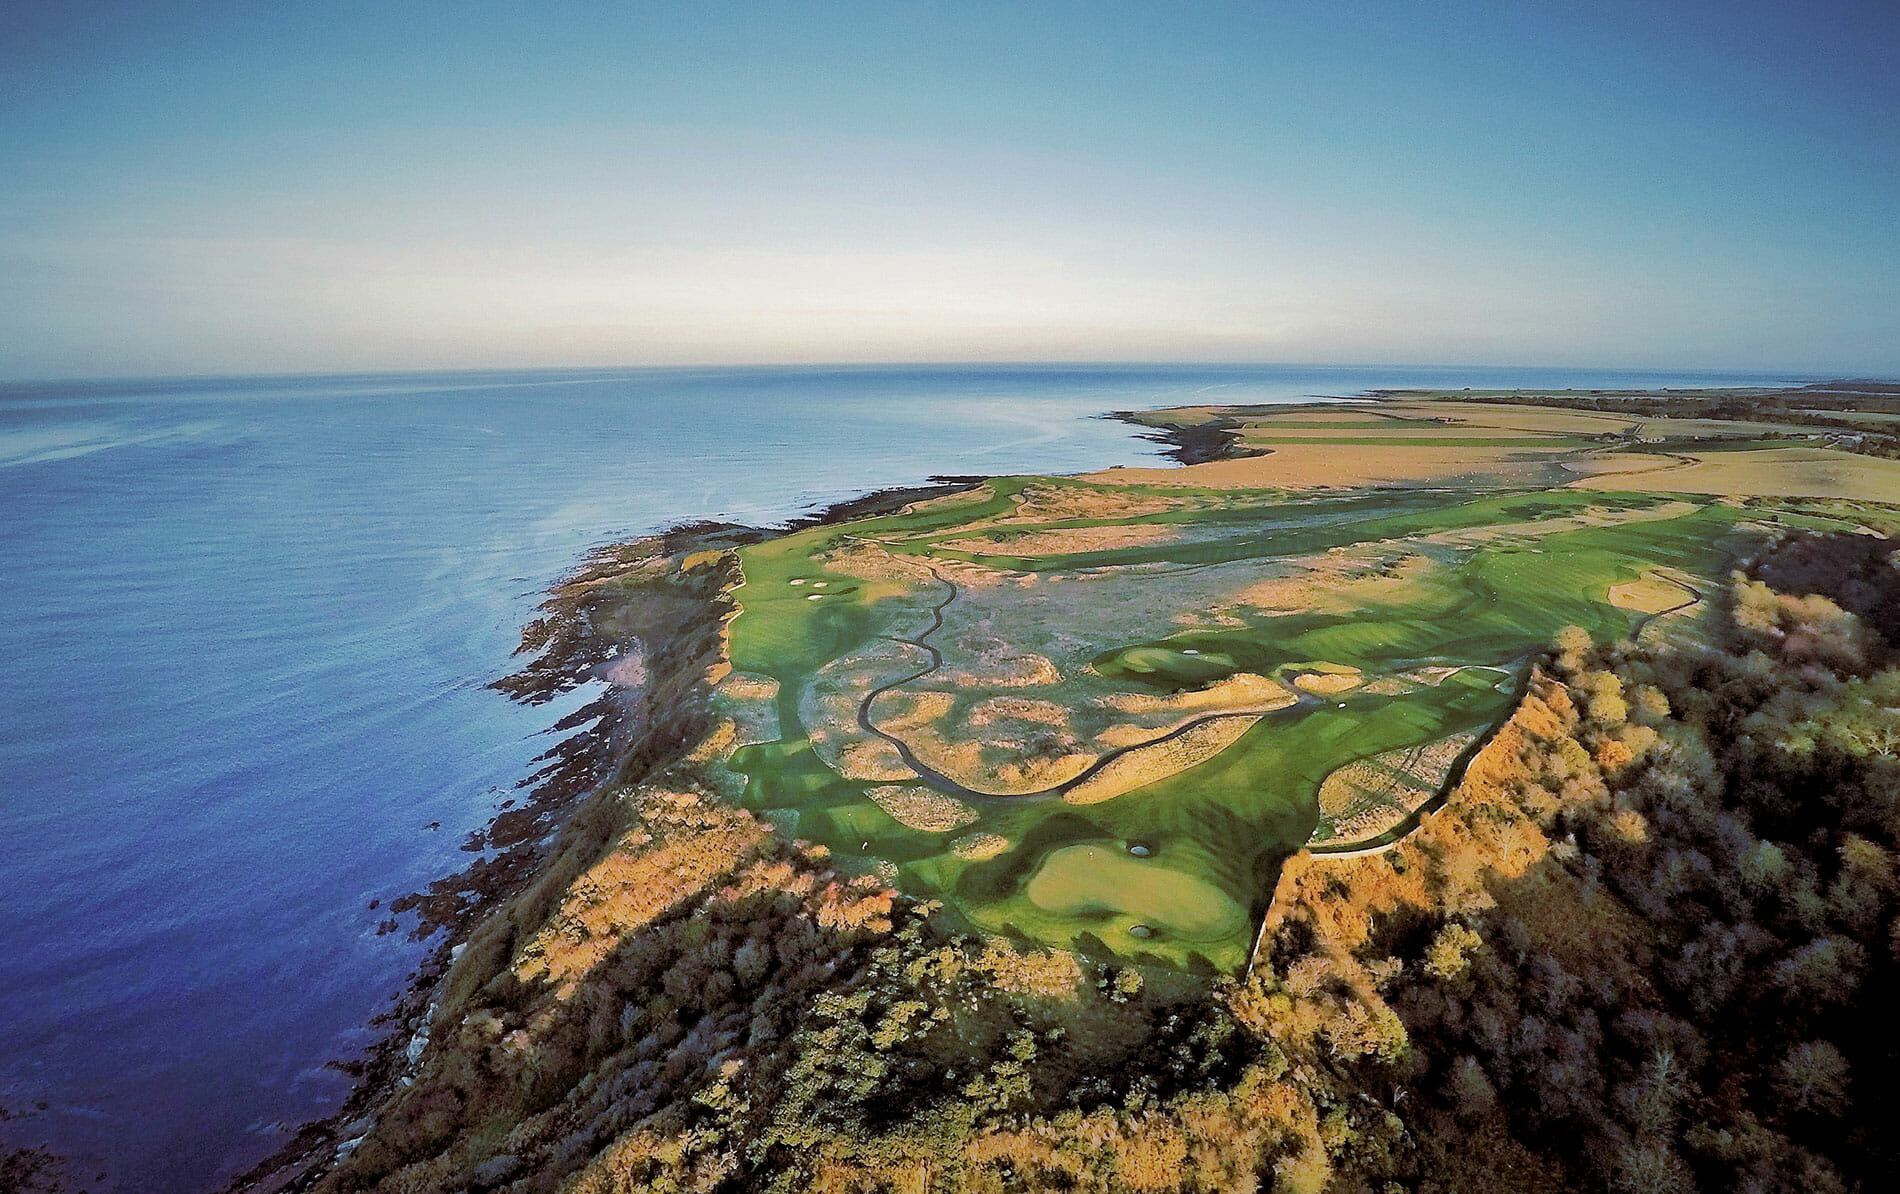 Aerial view of the Torrance and Kittocks Golf Courses at The Fairmont Hotel, St Andrews